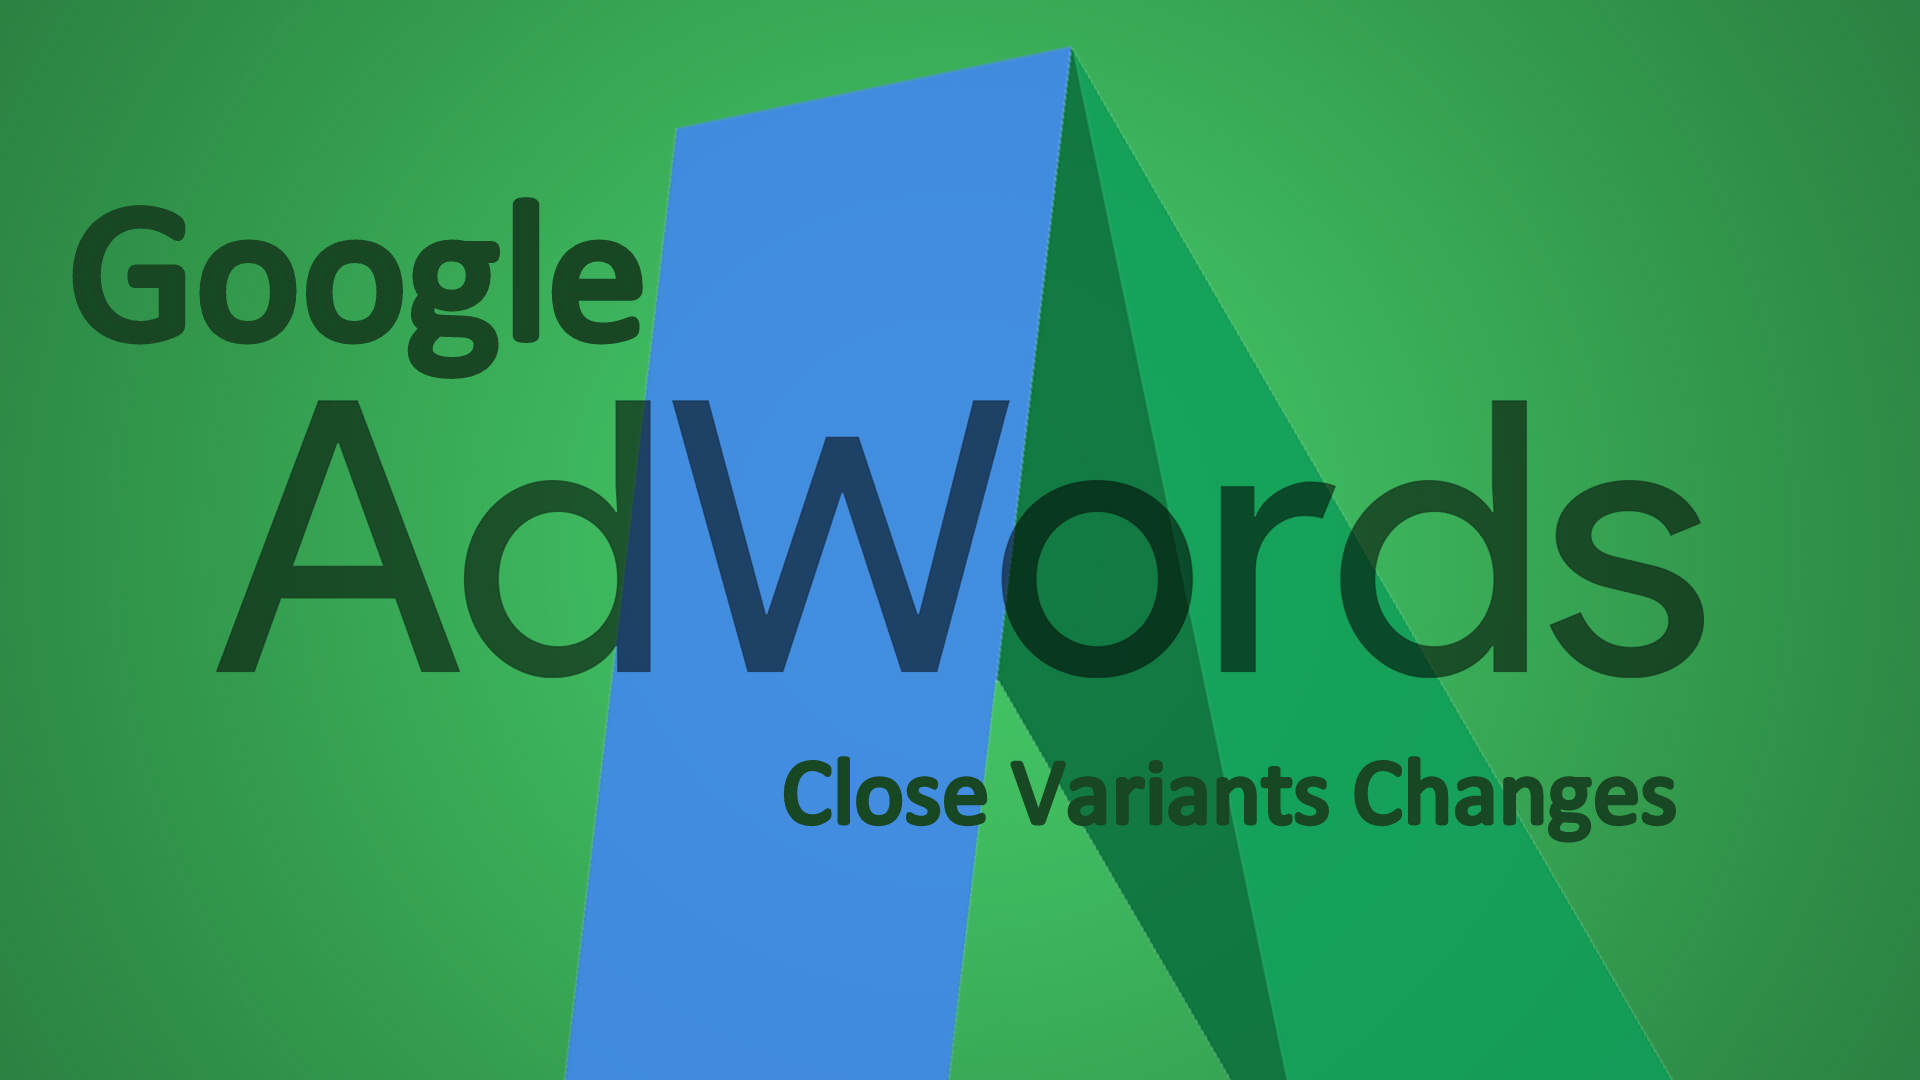 Close Variants Changes by Google AdWords that Shows more Relevant Result